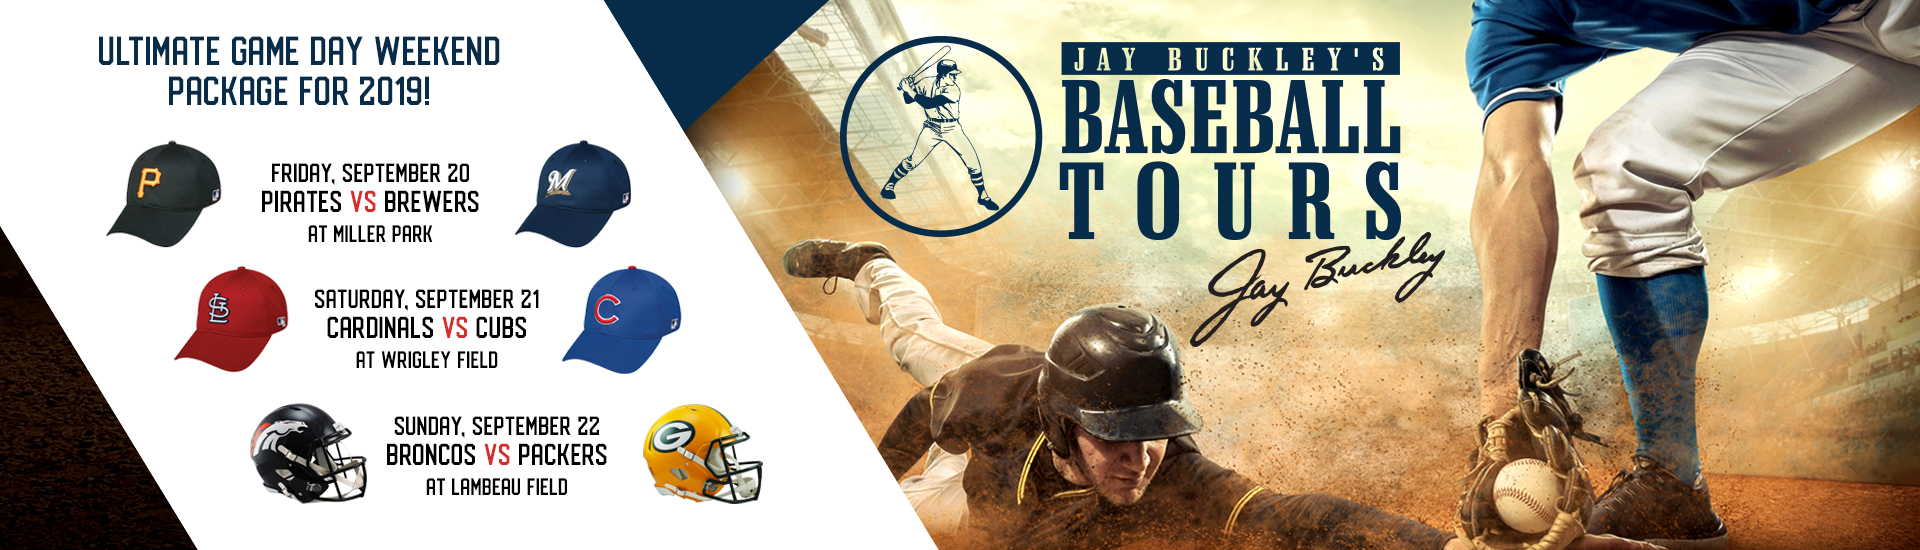 Jay Buckley Baseball Tours